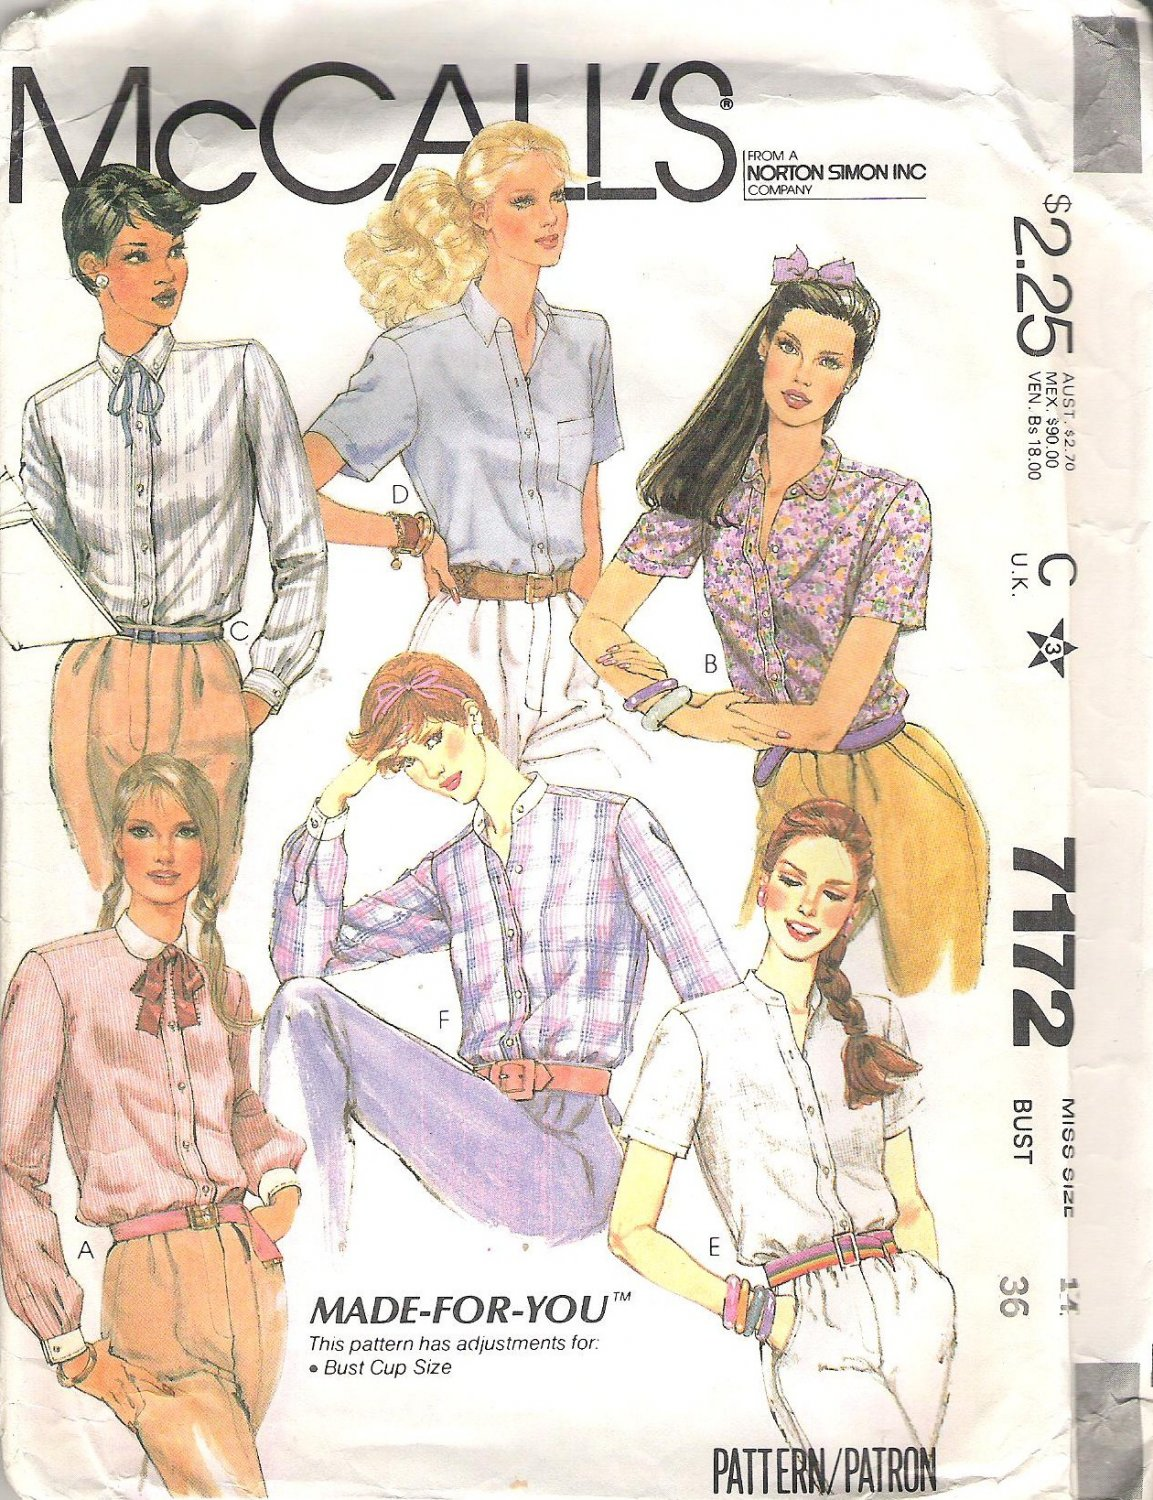 1980 McCalls 7172 Pattern Blouses Collar and Sleeve Variations Bust Cup Size Adjustments Size14 Cut